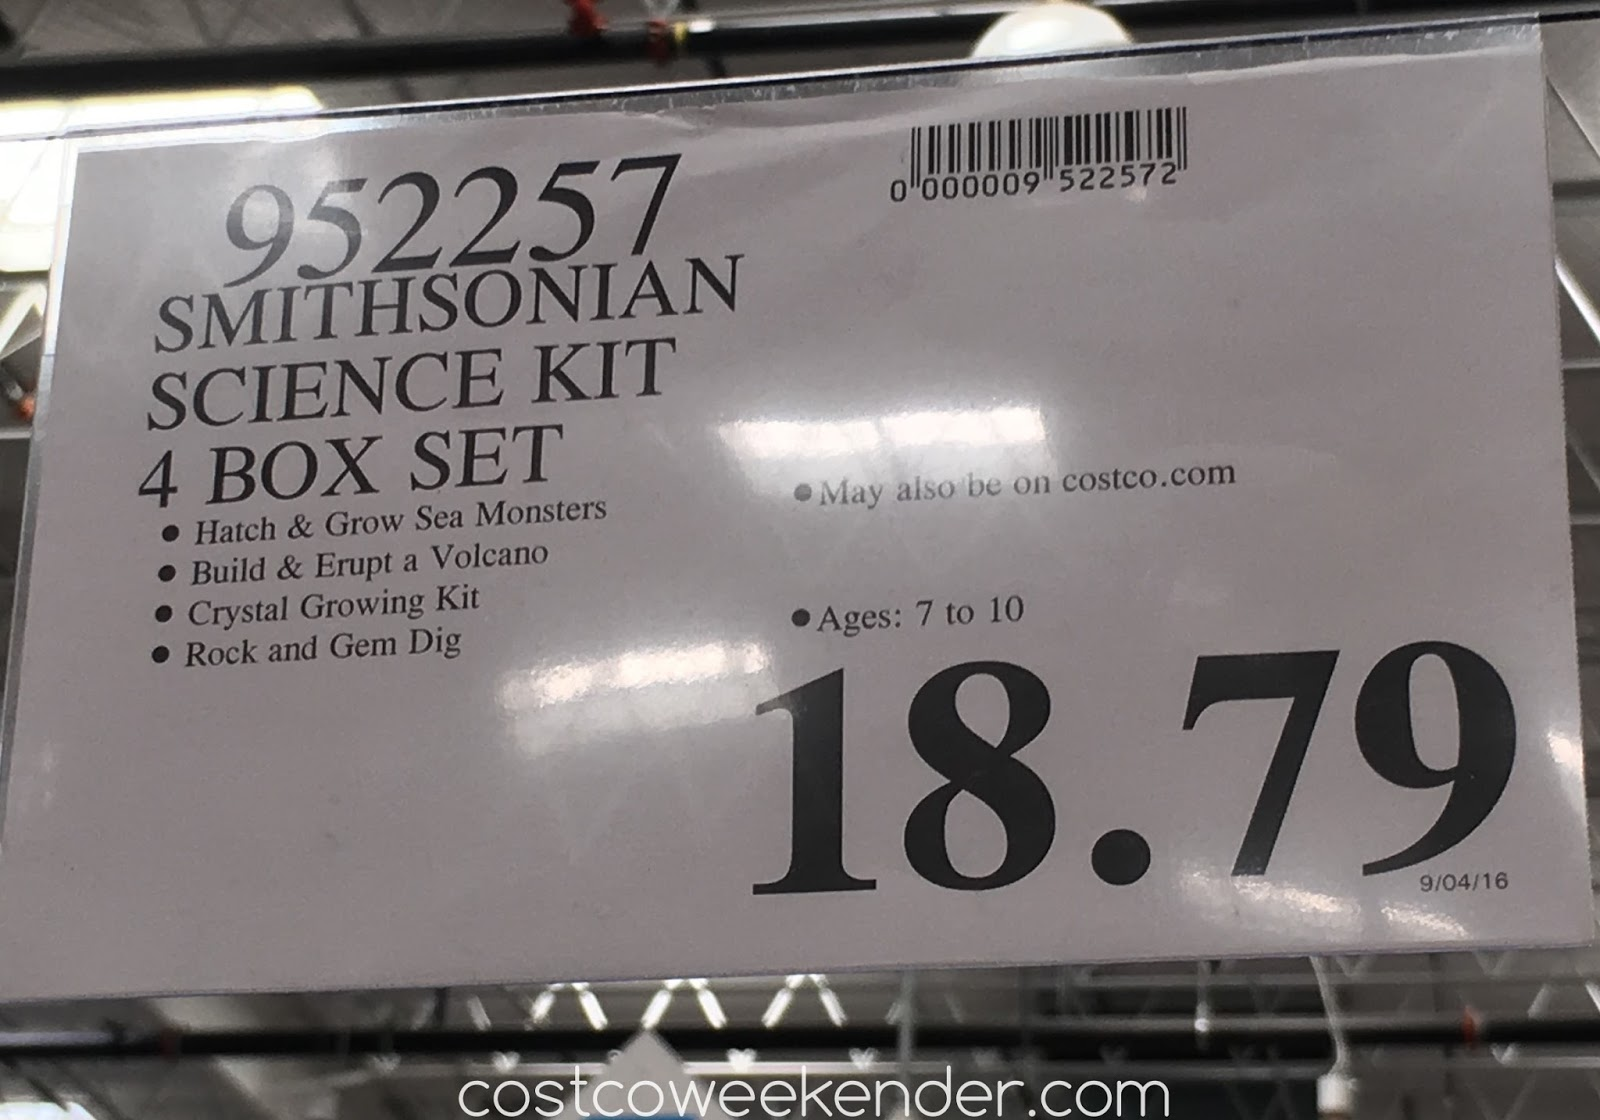 Deal for the Smithsonian Science Kit 4 Box Set at Costco